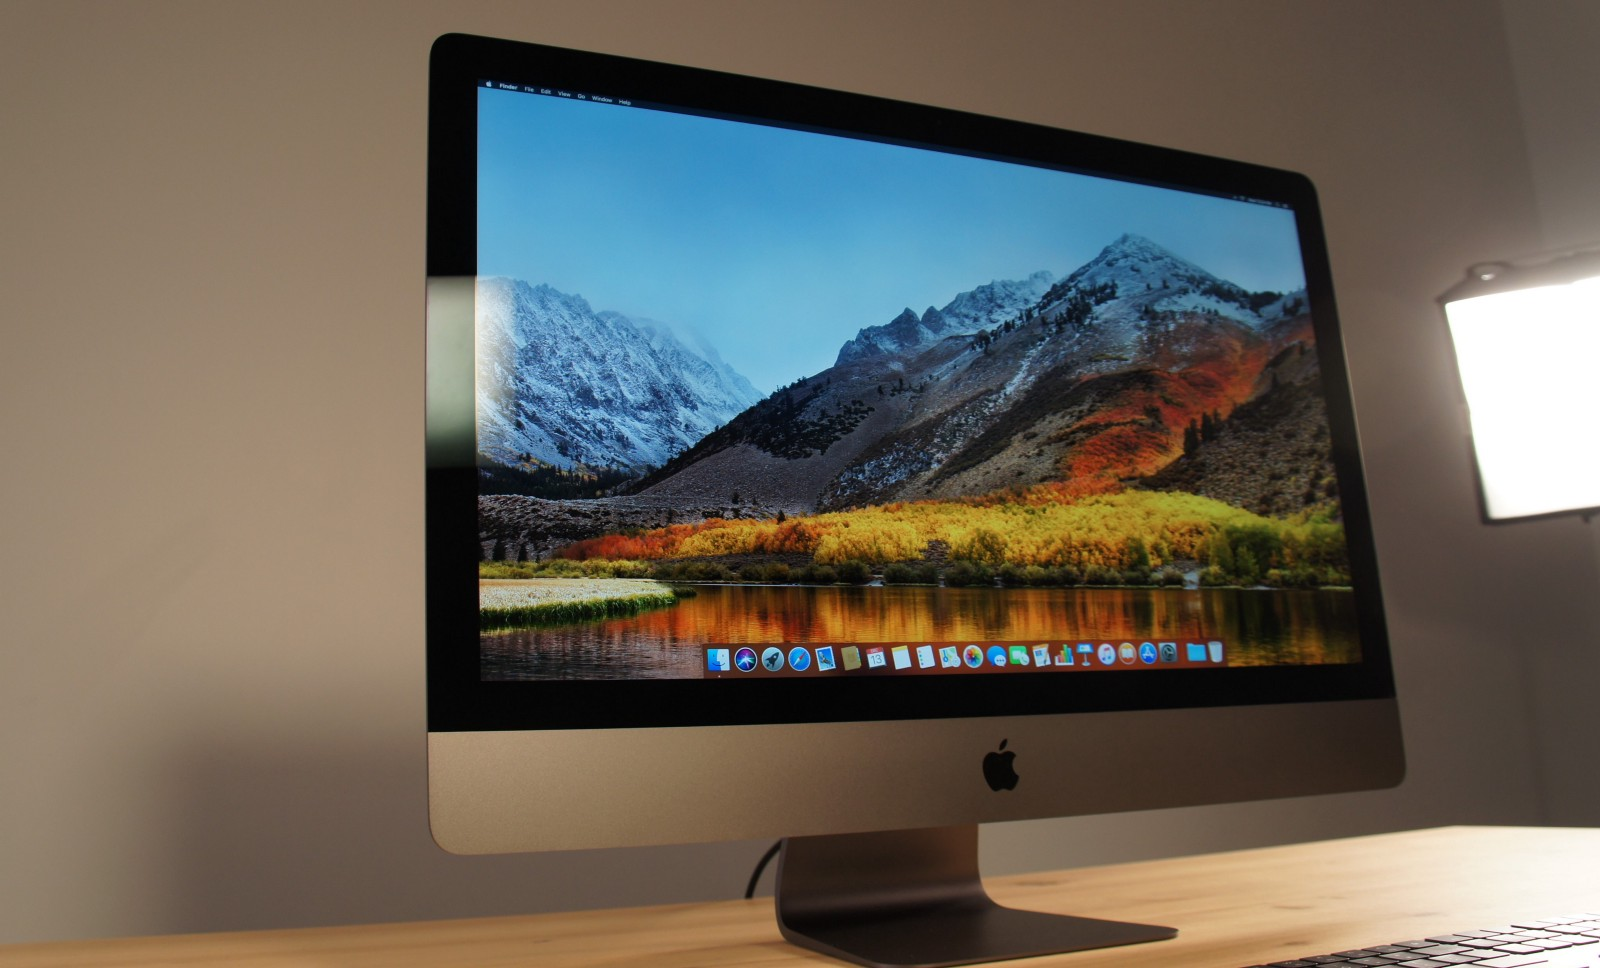 Yup Apple S Imac Pro Is A Processing Monster Lance